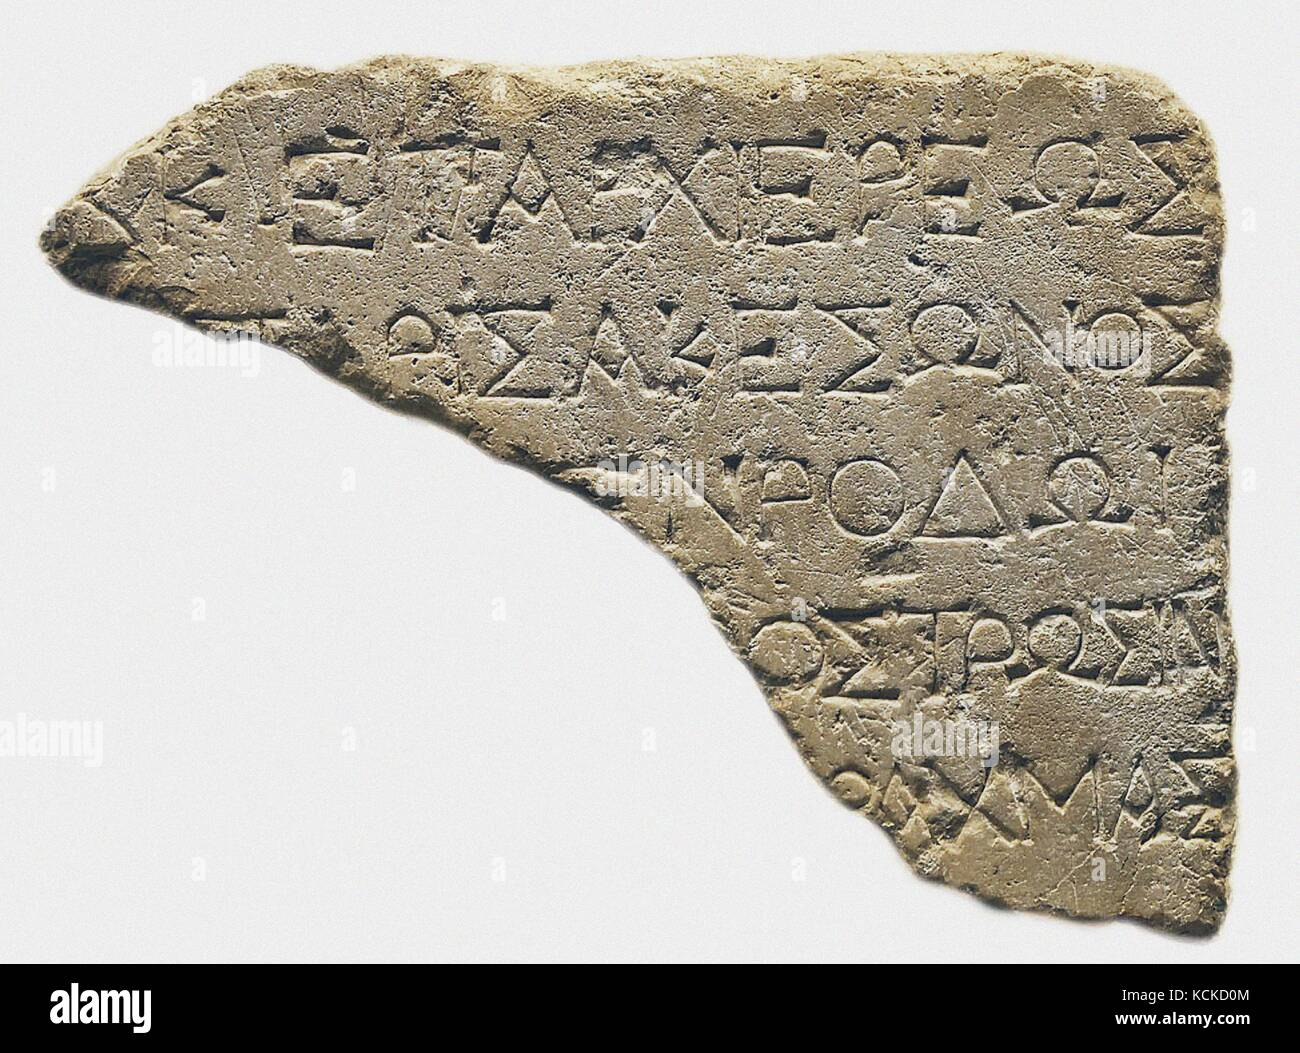 "6094. Greek inscription describing a donation from ""Paris son of Akeson of Rhodes"" to Herod's Temple in Jerusalem - Stock Image"